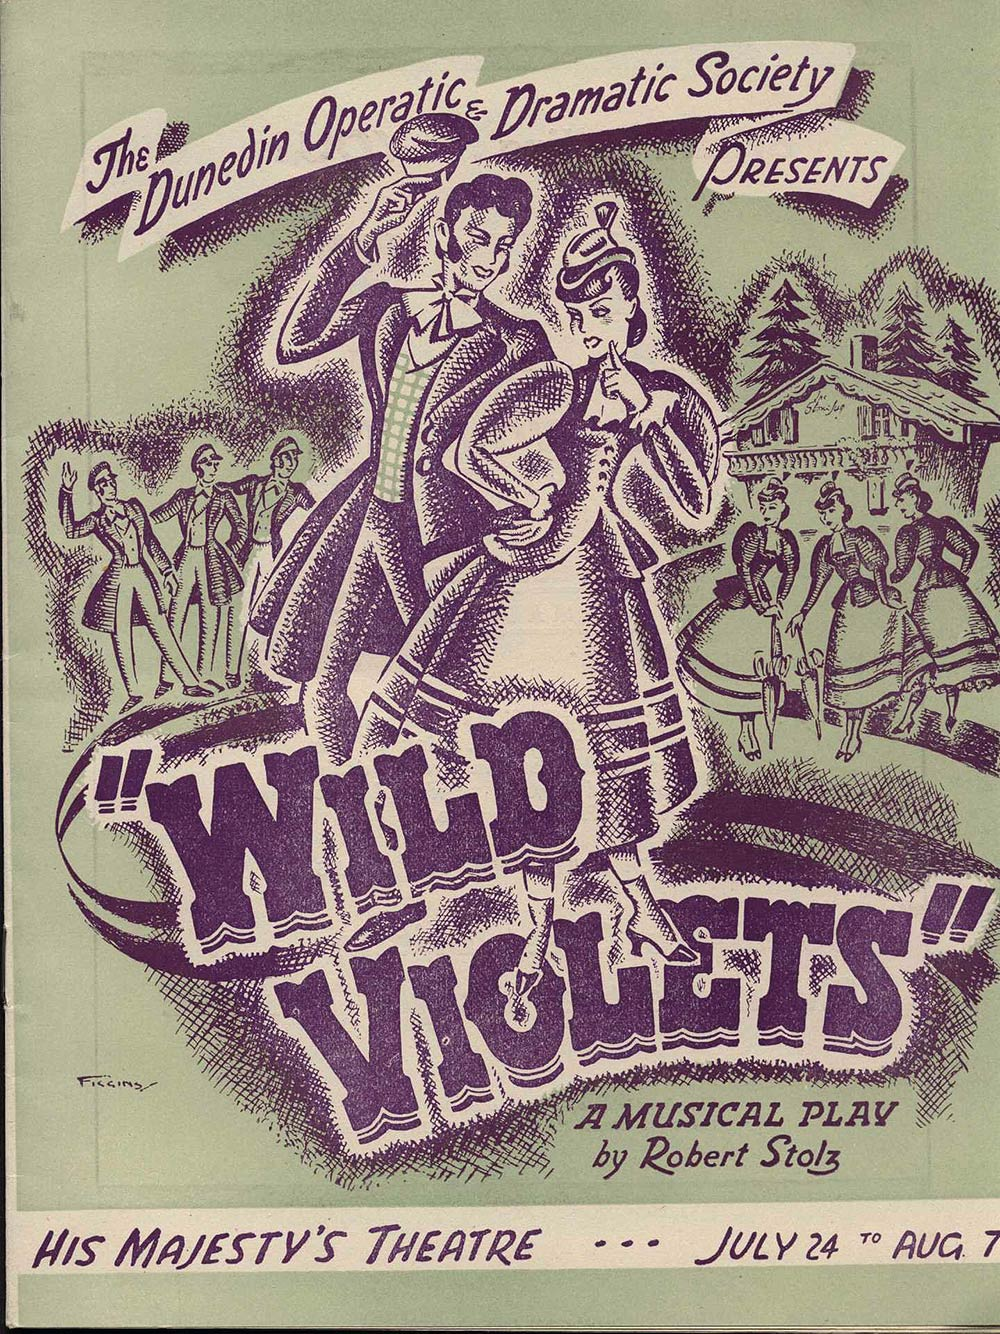 <em>Wild violets</em>. Bruno Hardt-Warden; lyrics by Desmond Carter; music by Robert Stolz. (Dunedin Operatic & Dramatic Society). His Majesty's Theatre, Dunedin, July 24-Aug. 7, 1948.